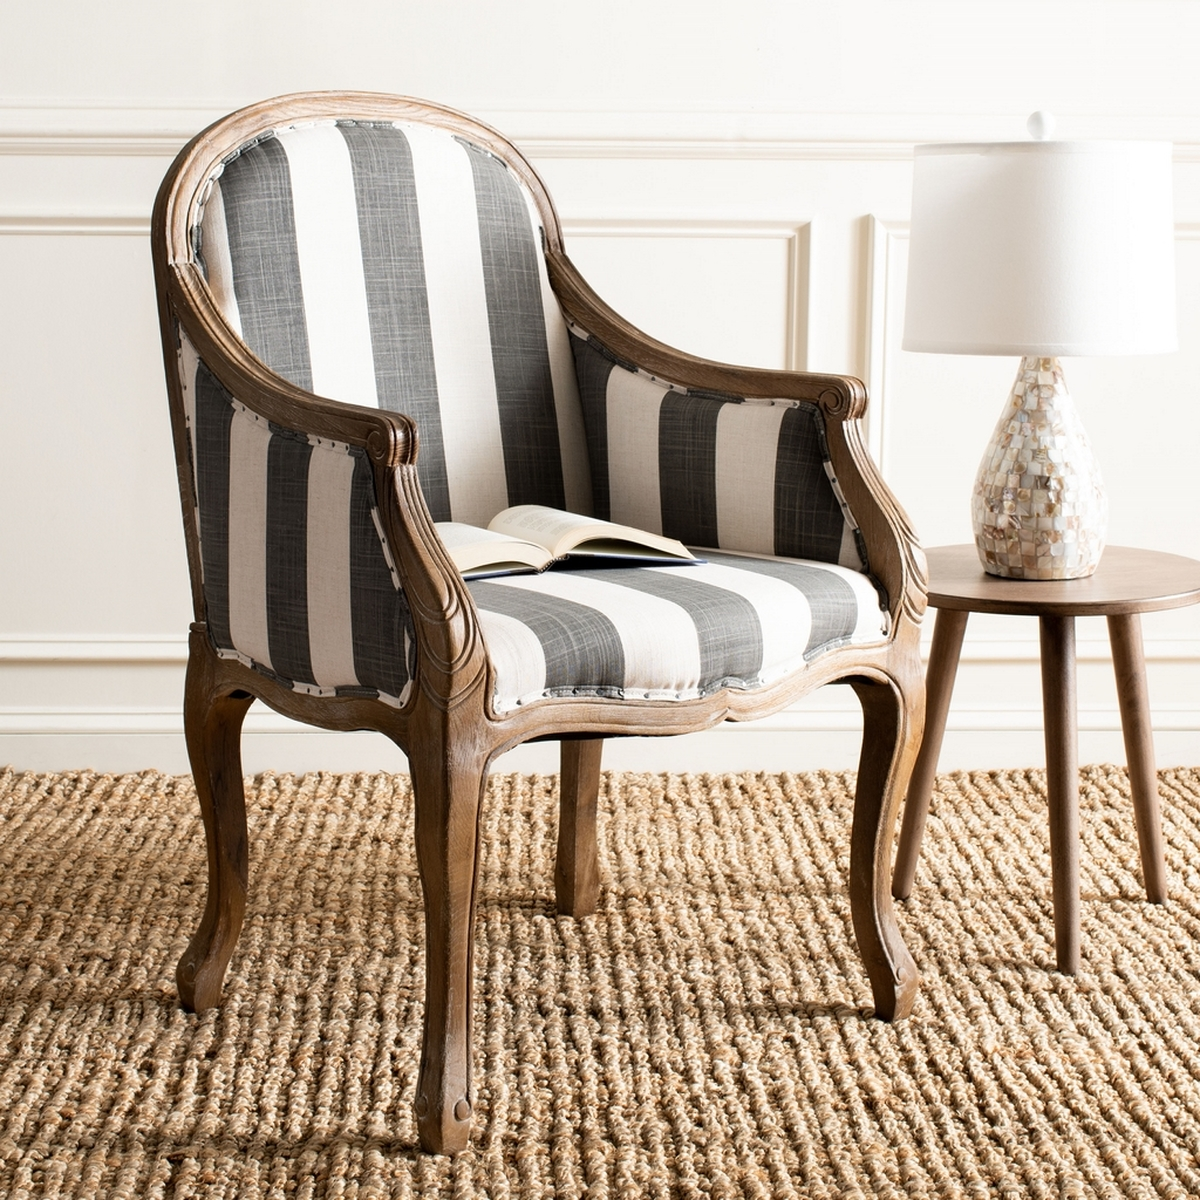 Integrate The Refined Beauty Of French Classical Furniture Into Modern Day  Interiors With The Camelback Esther Arm Chair. Classic Louis XV Bergere  Styling, ...